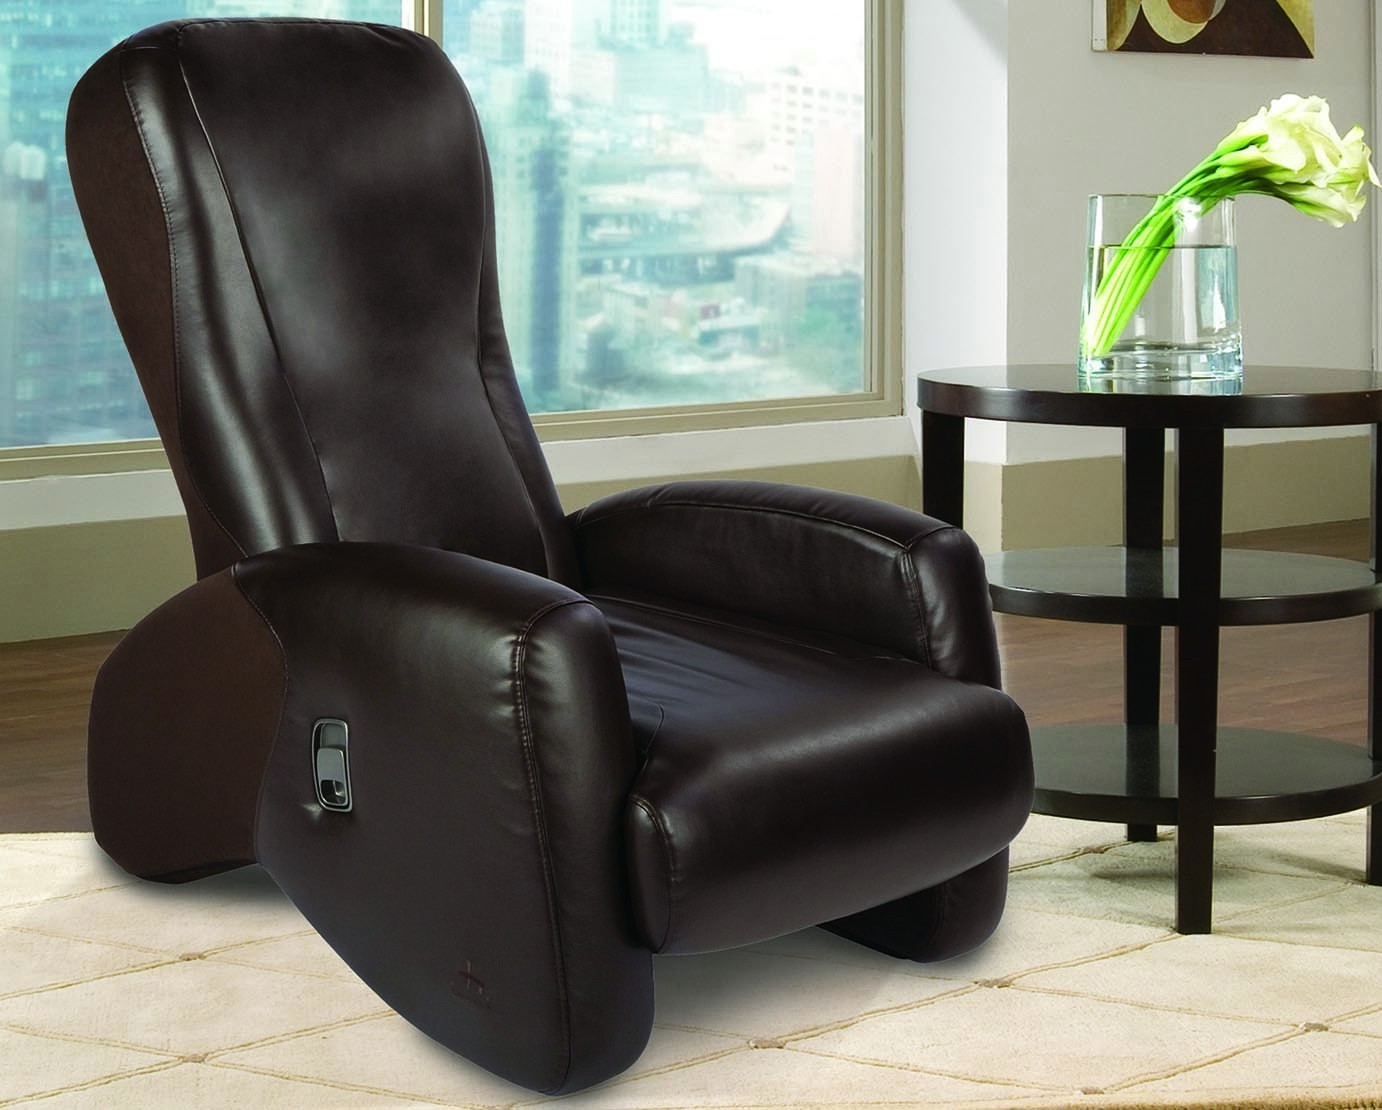 ijoy casual massage chair new